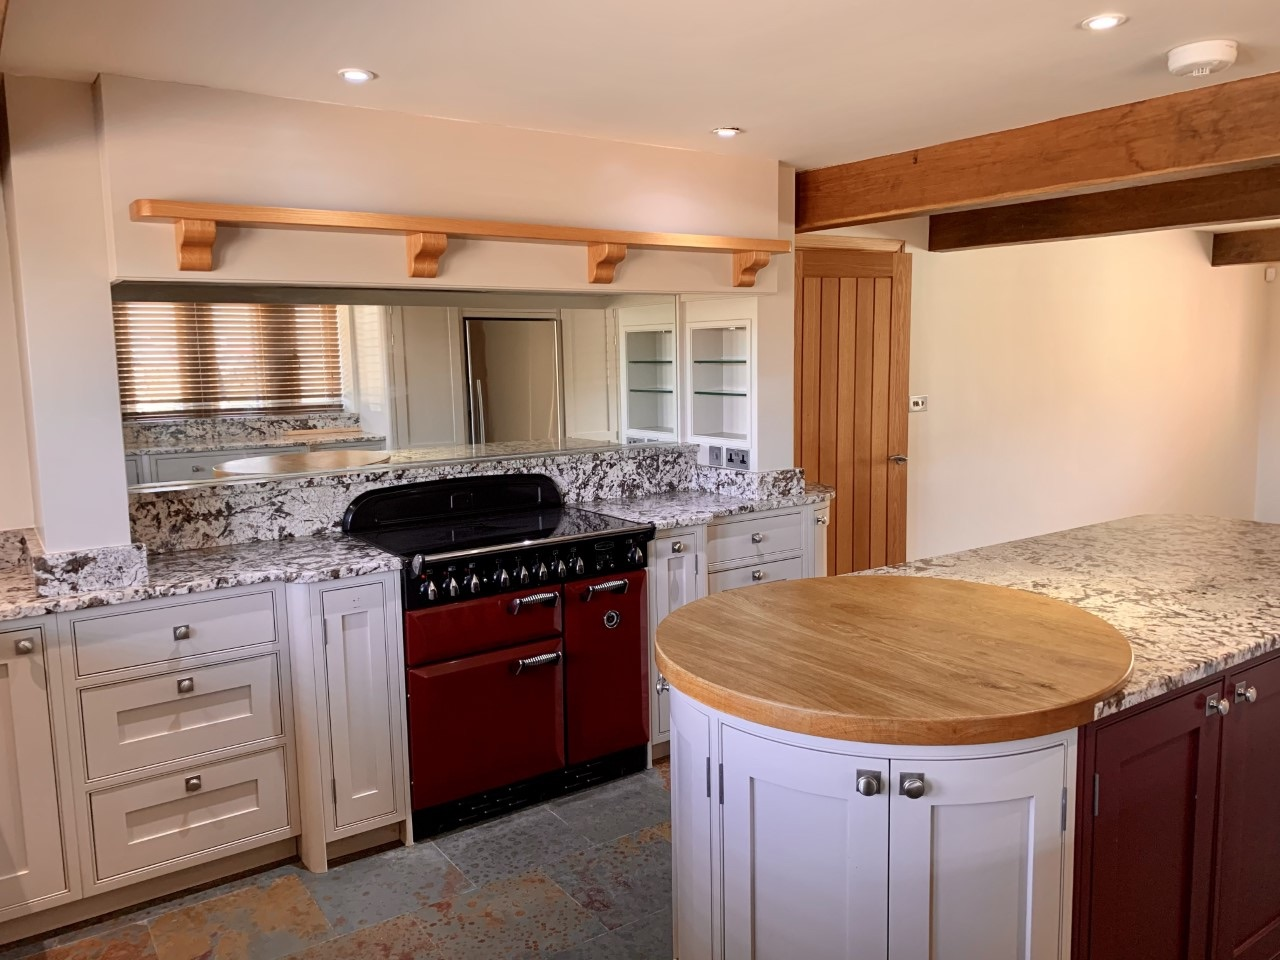 3 bedroom detached house For Sale in Todmorden - Photograph 8.